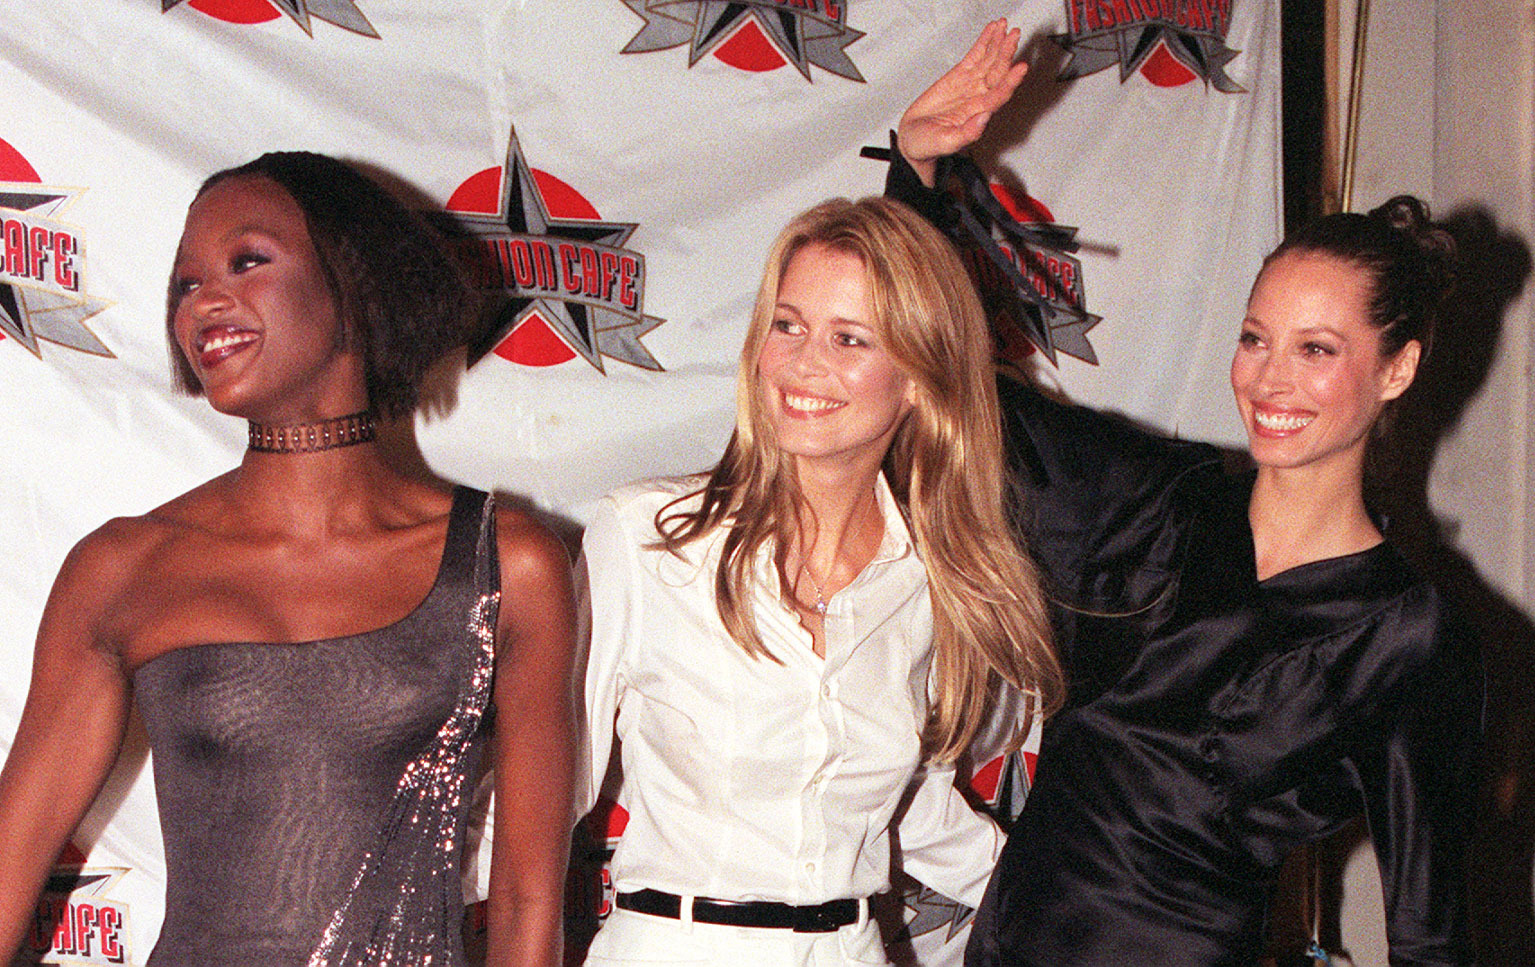 Campbell with two of the other supers, Claudia Schiffer (middle) and Christy Turlington